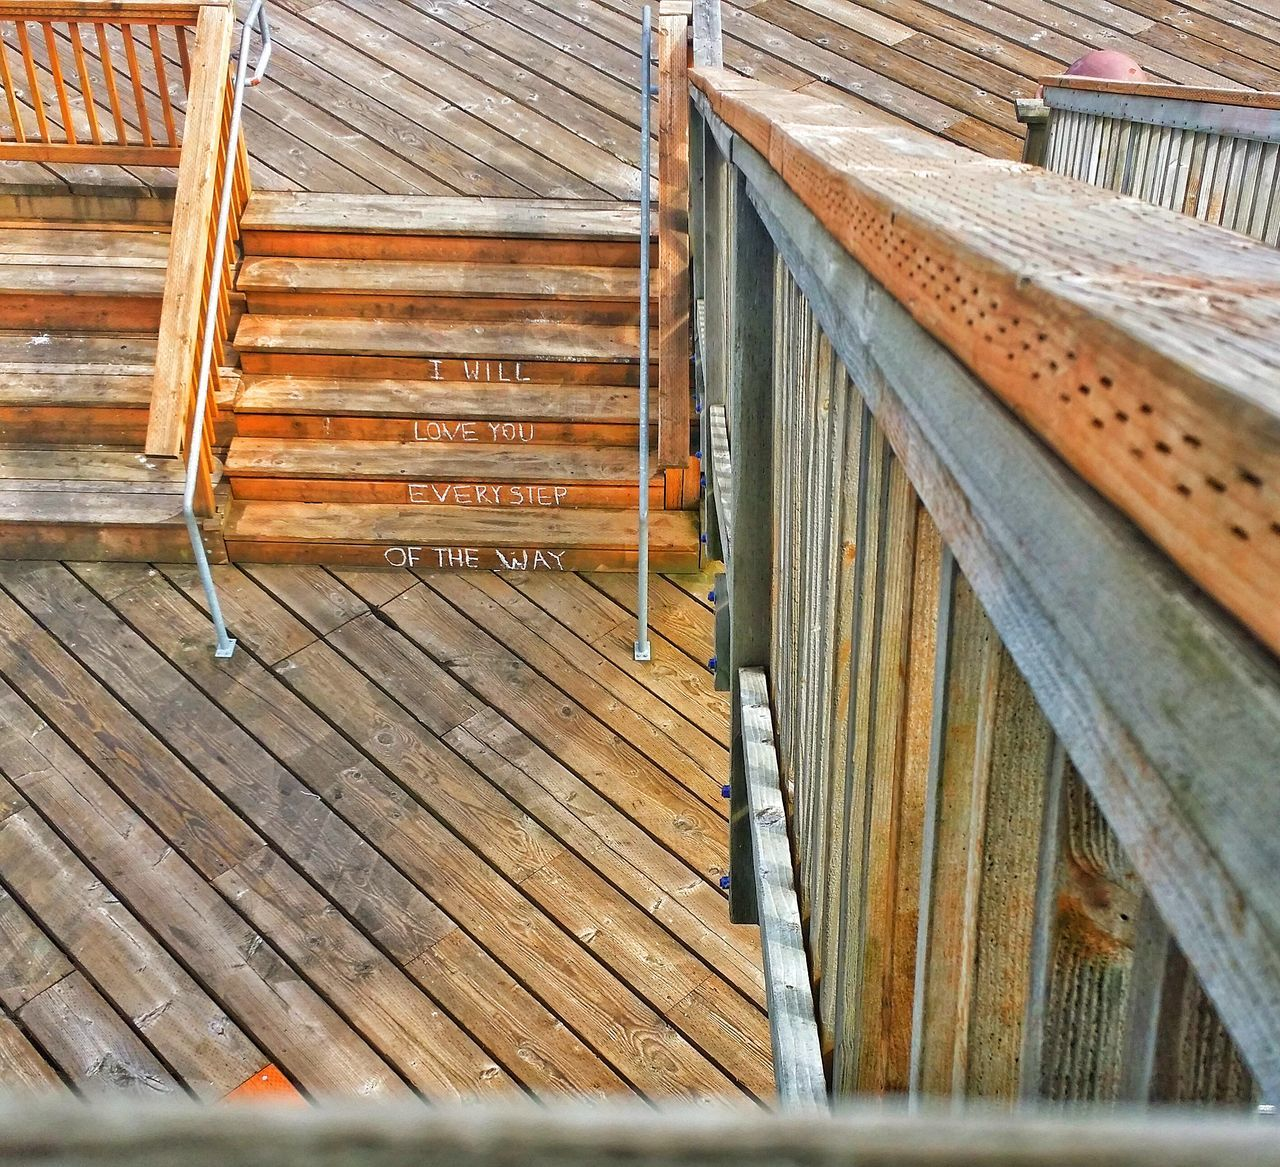 High Angle View Of Wooden Stairs With Text